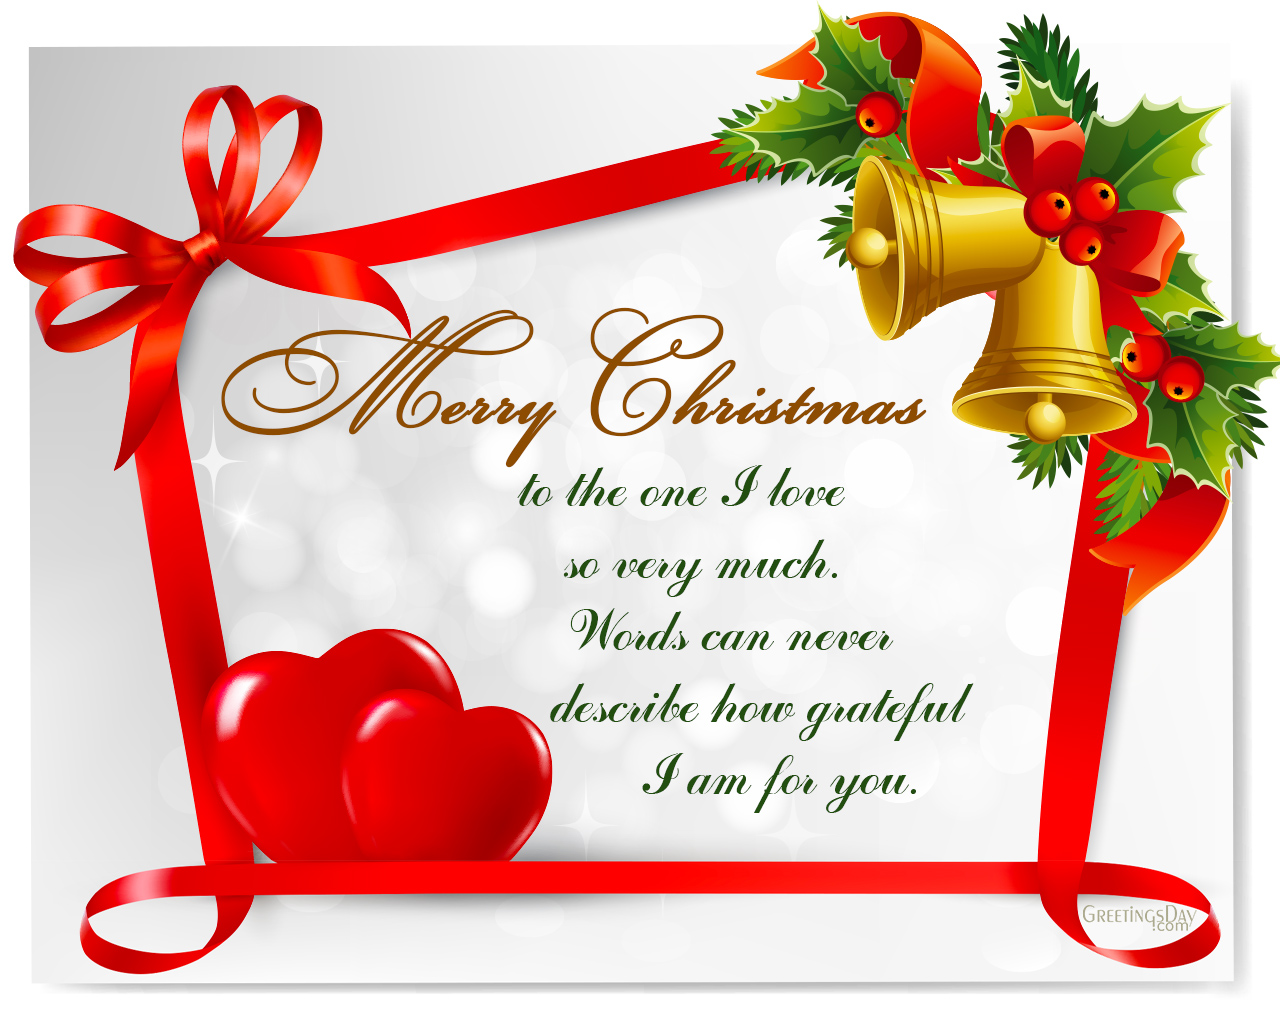 Beautiful merry christmas and happy new year greeting words image image result for beautiful merry christmas and happy new year greeting words image m4hsunfo